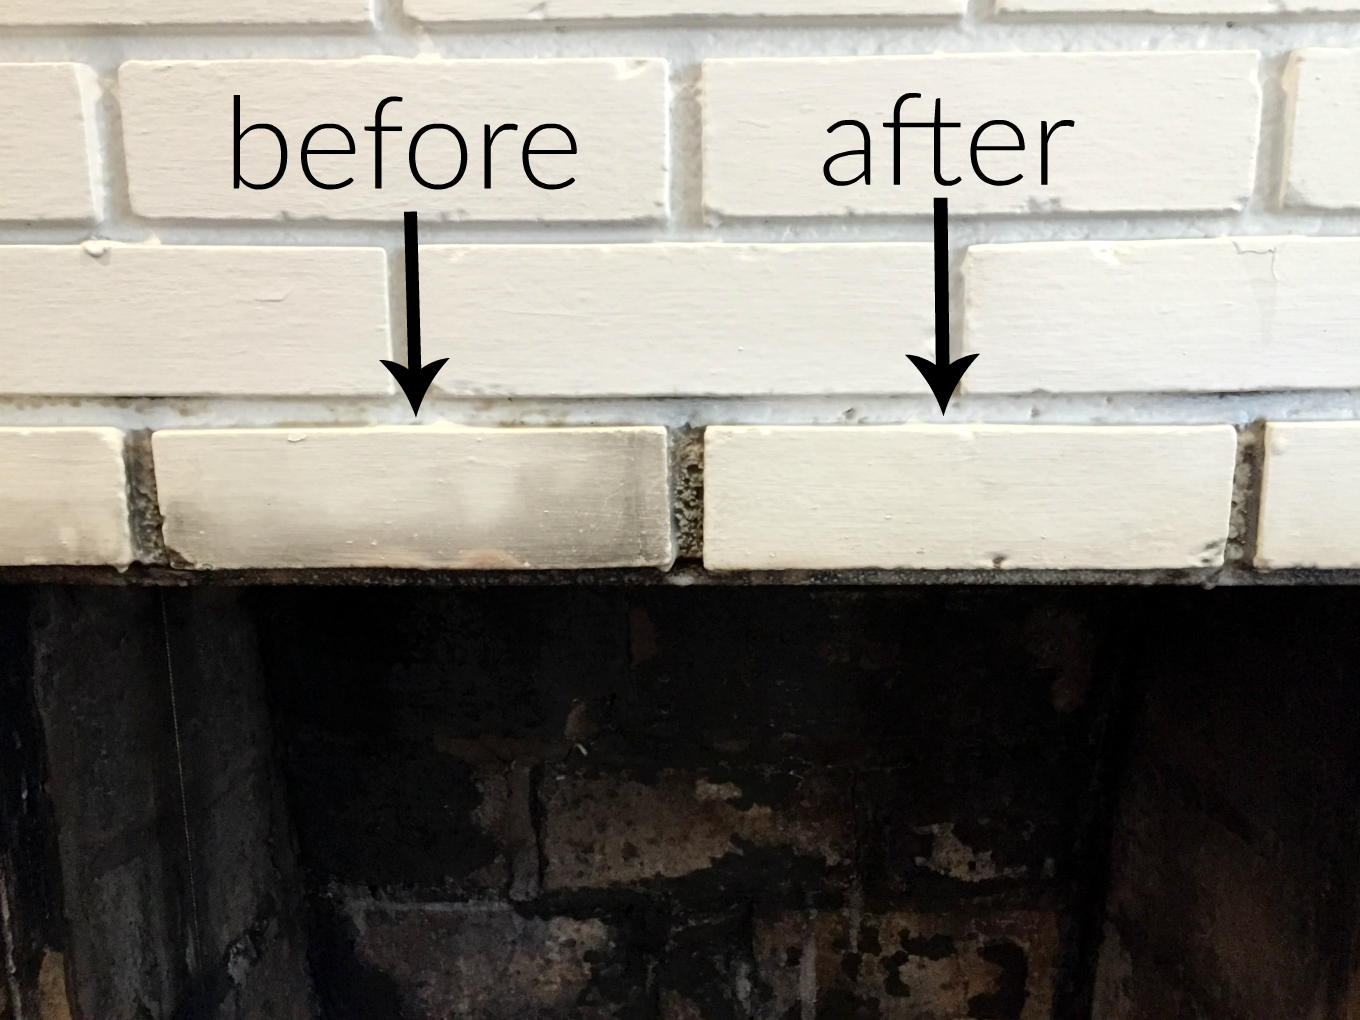 Before and after using the cleaner for how to clean a fireplace firebox - thediybungalow.com